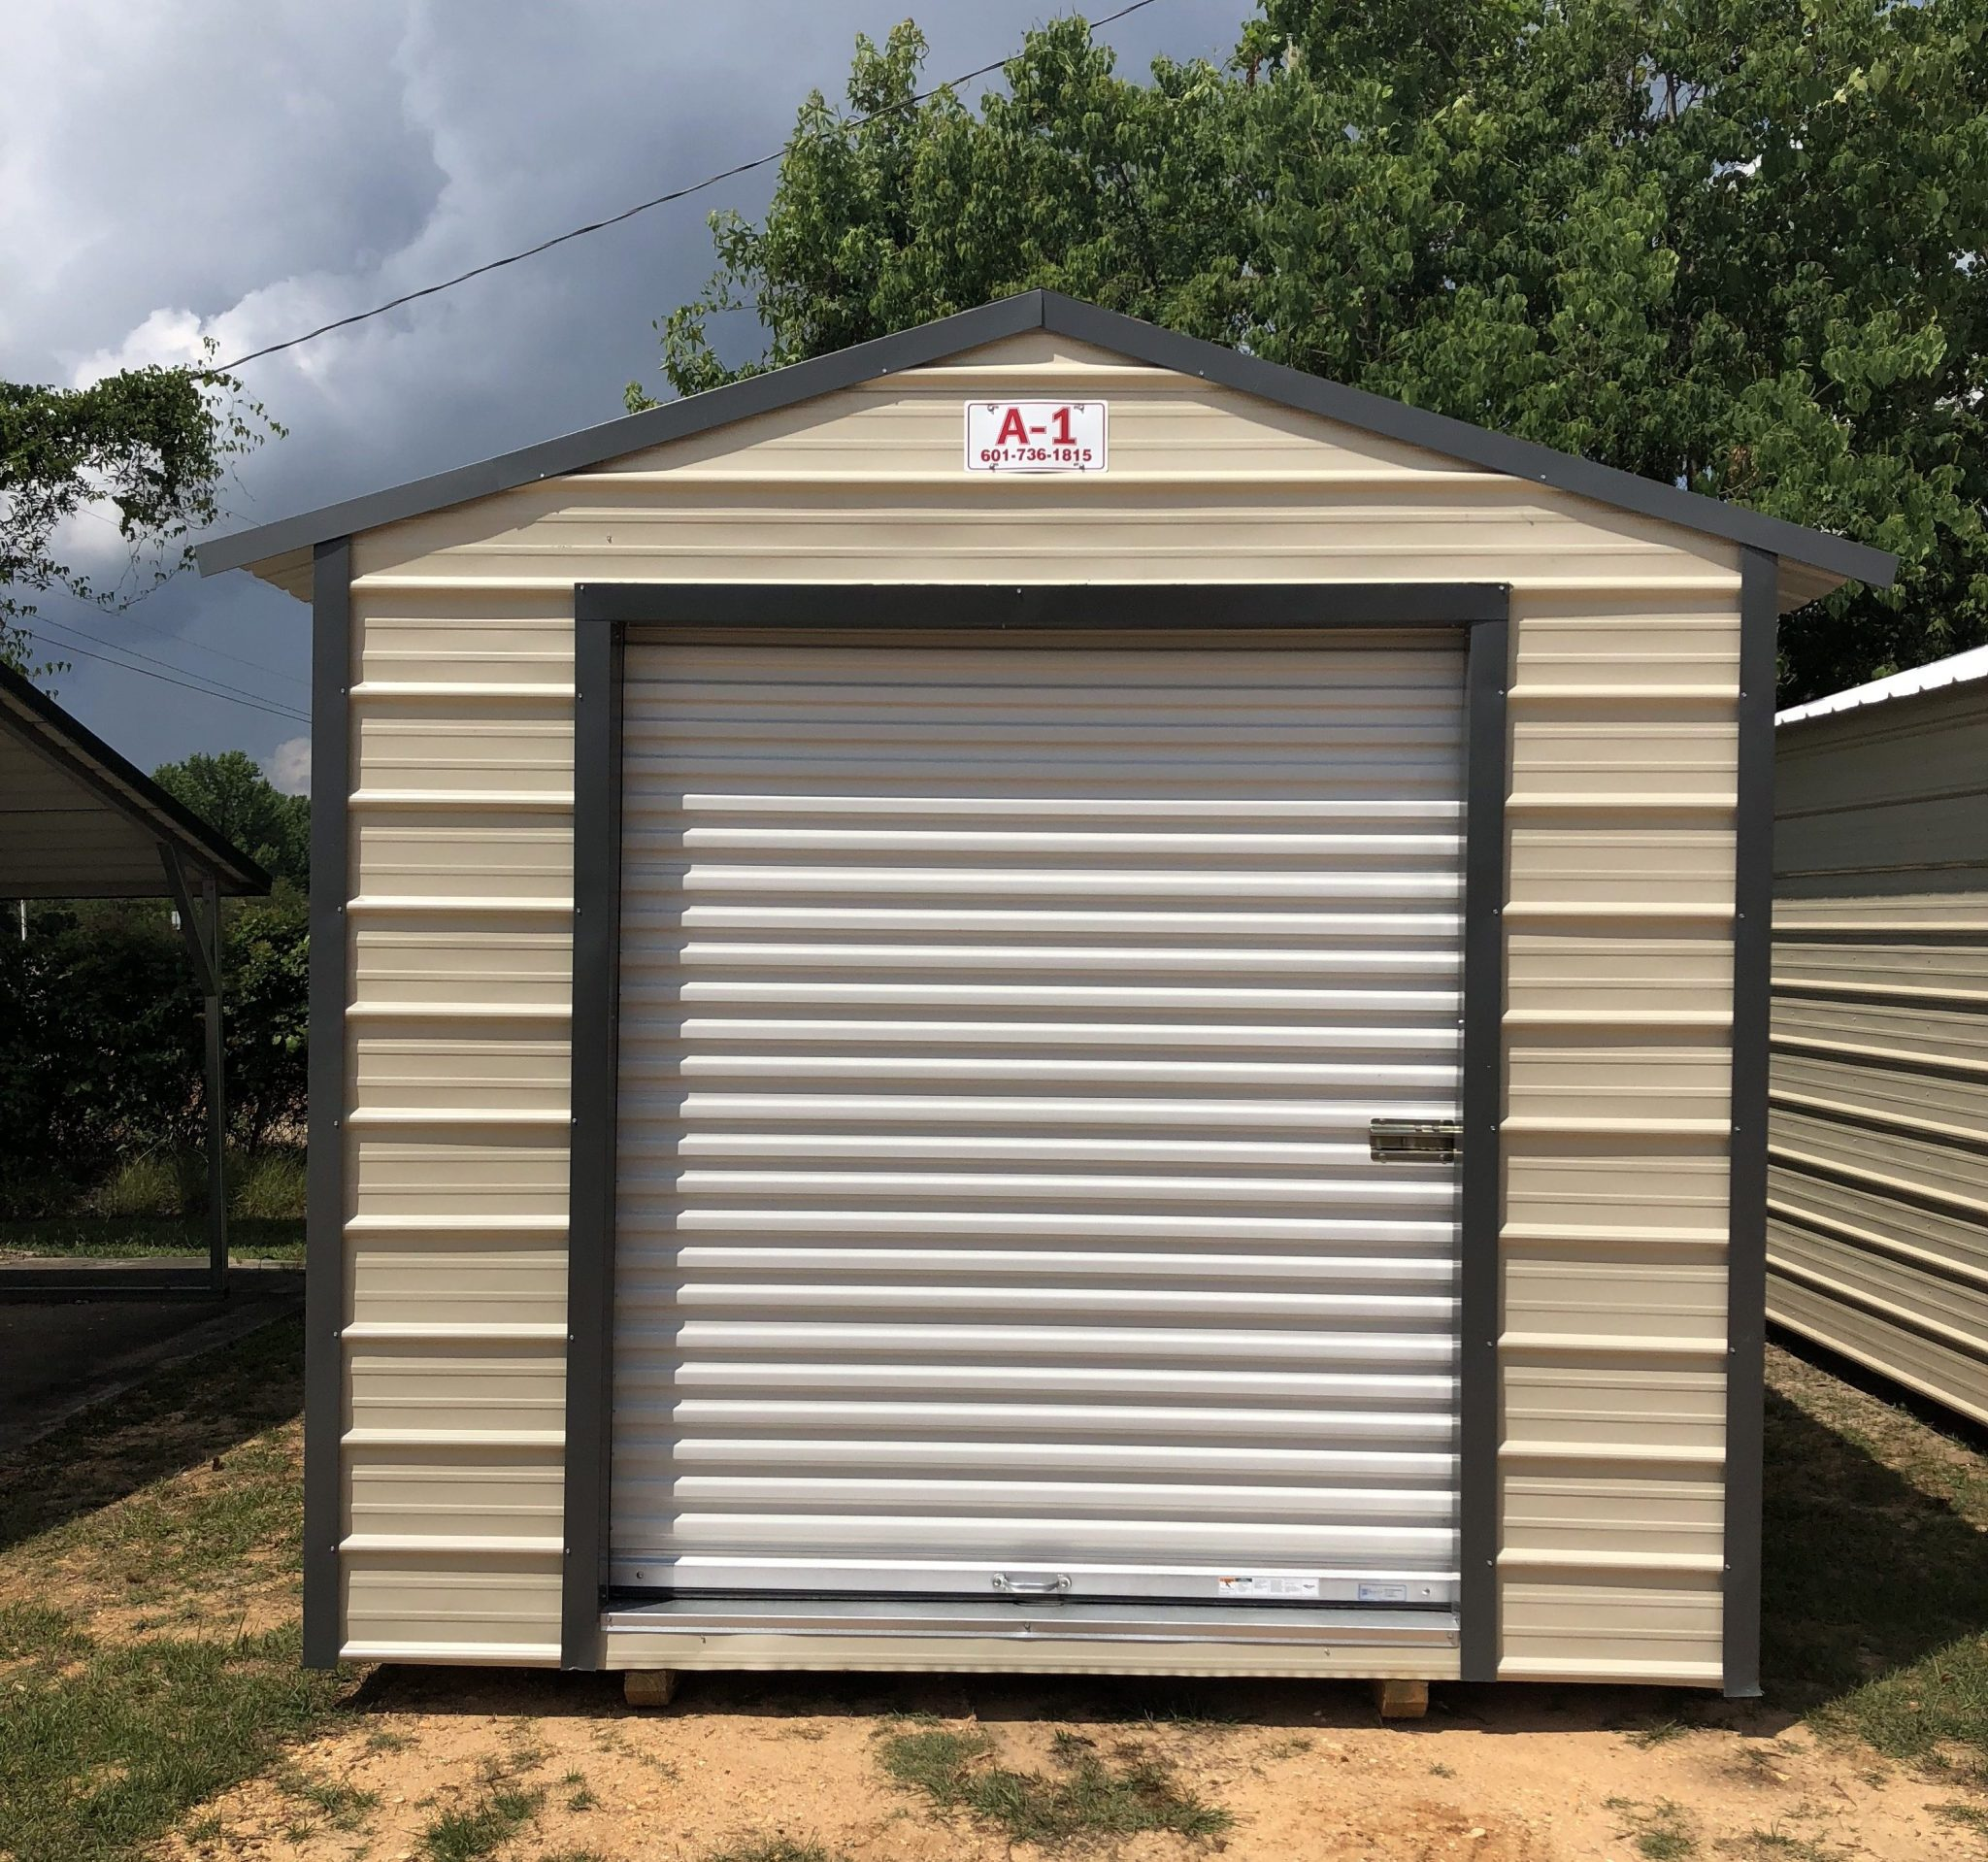 Garage Storage Buildings Portable Mini Garage Portable Shed Hattiesburg Columbia